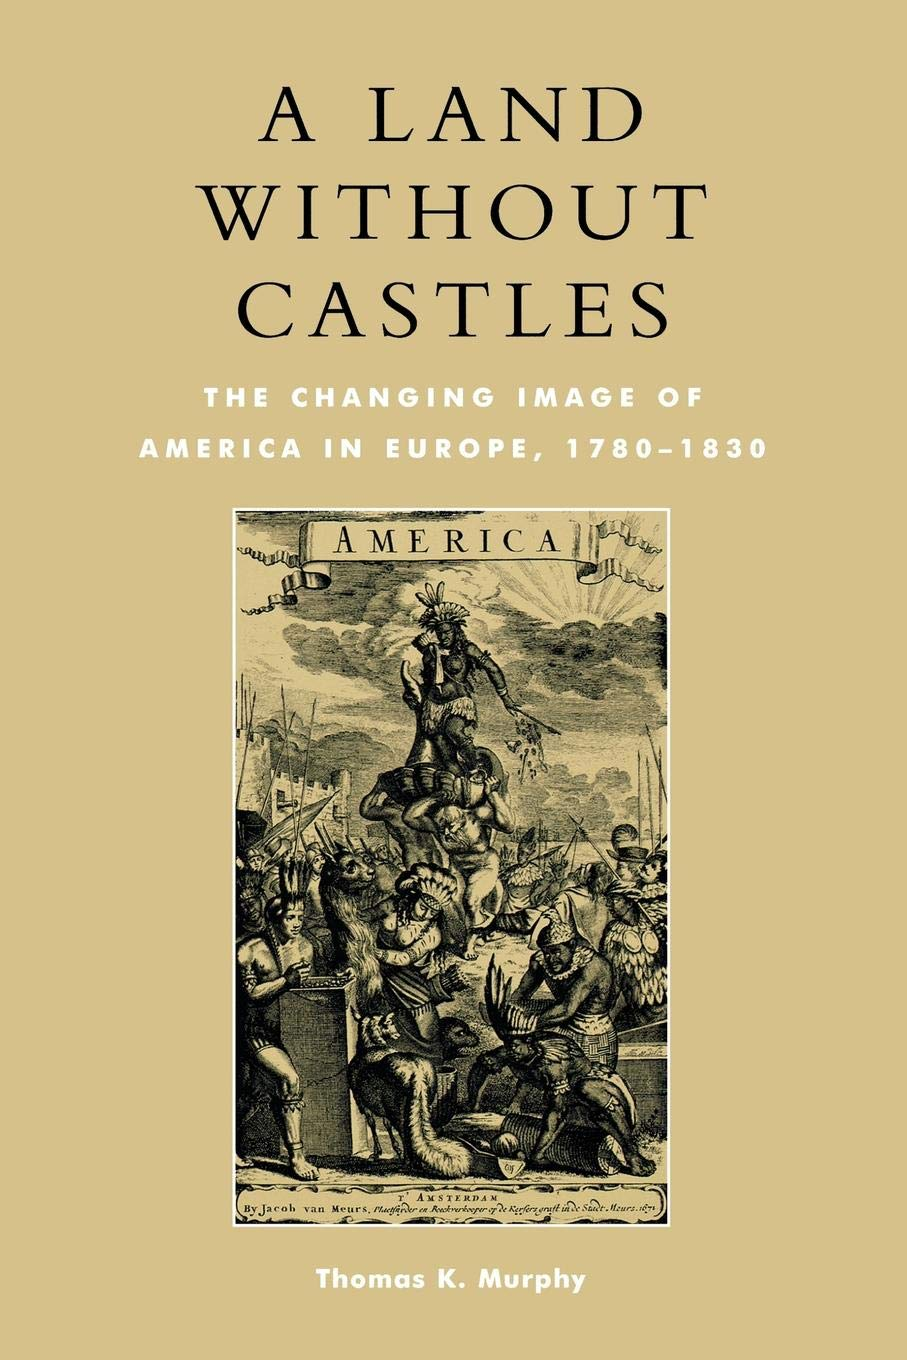 A Land without Castles: The Changing Image of America in Europe, 1780-1830